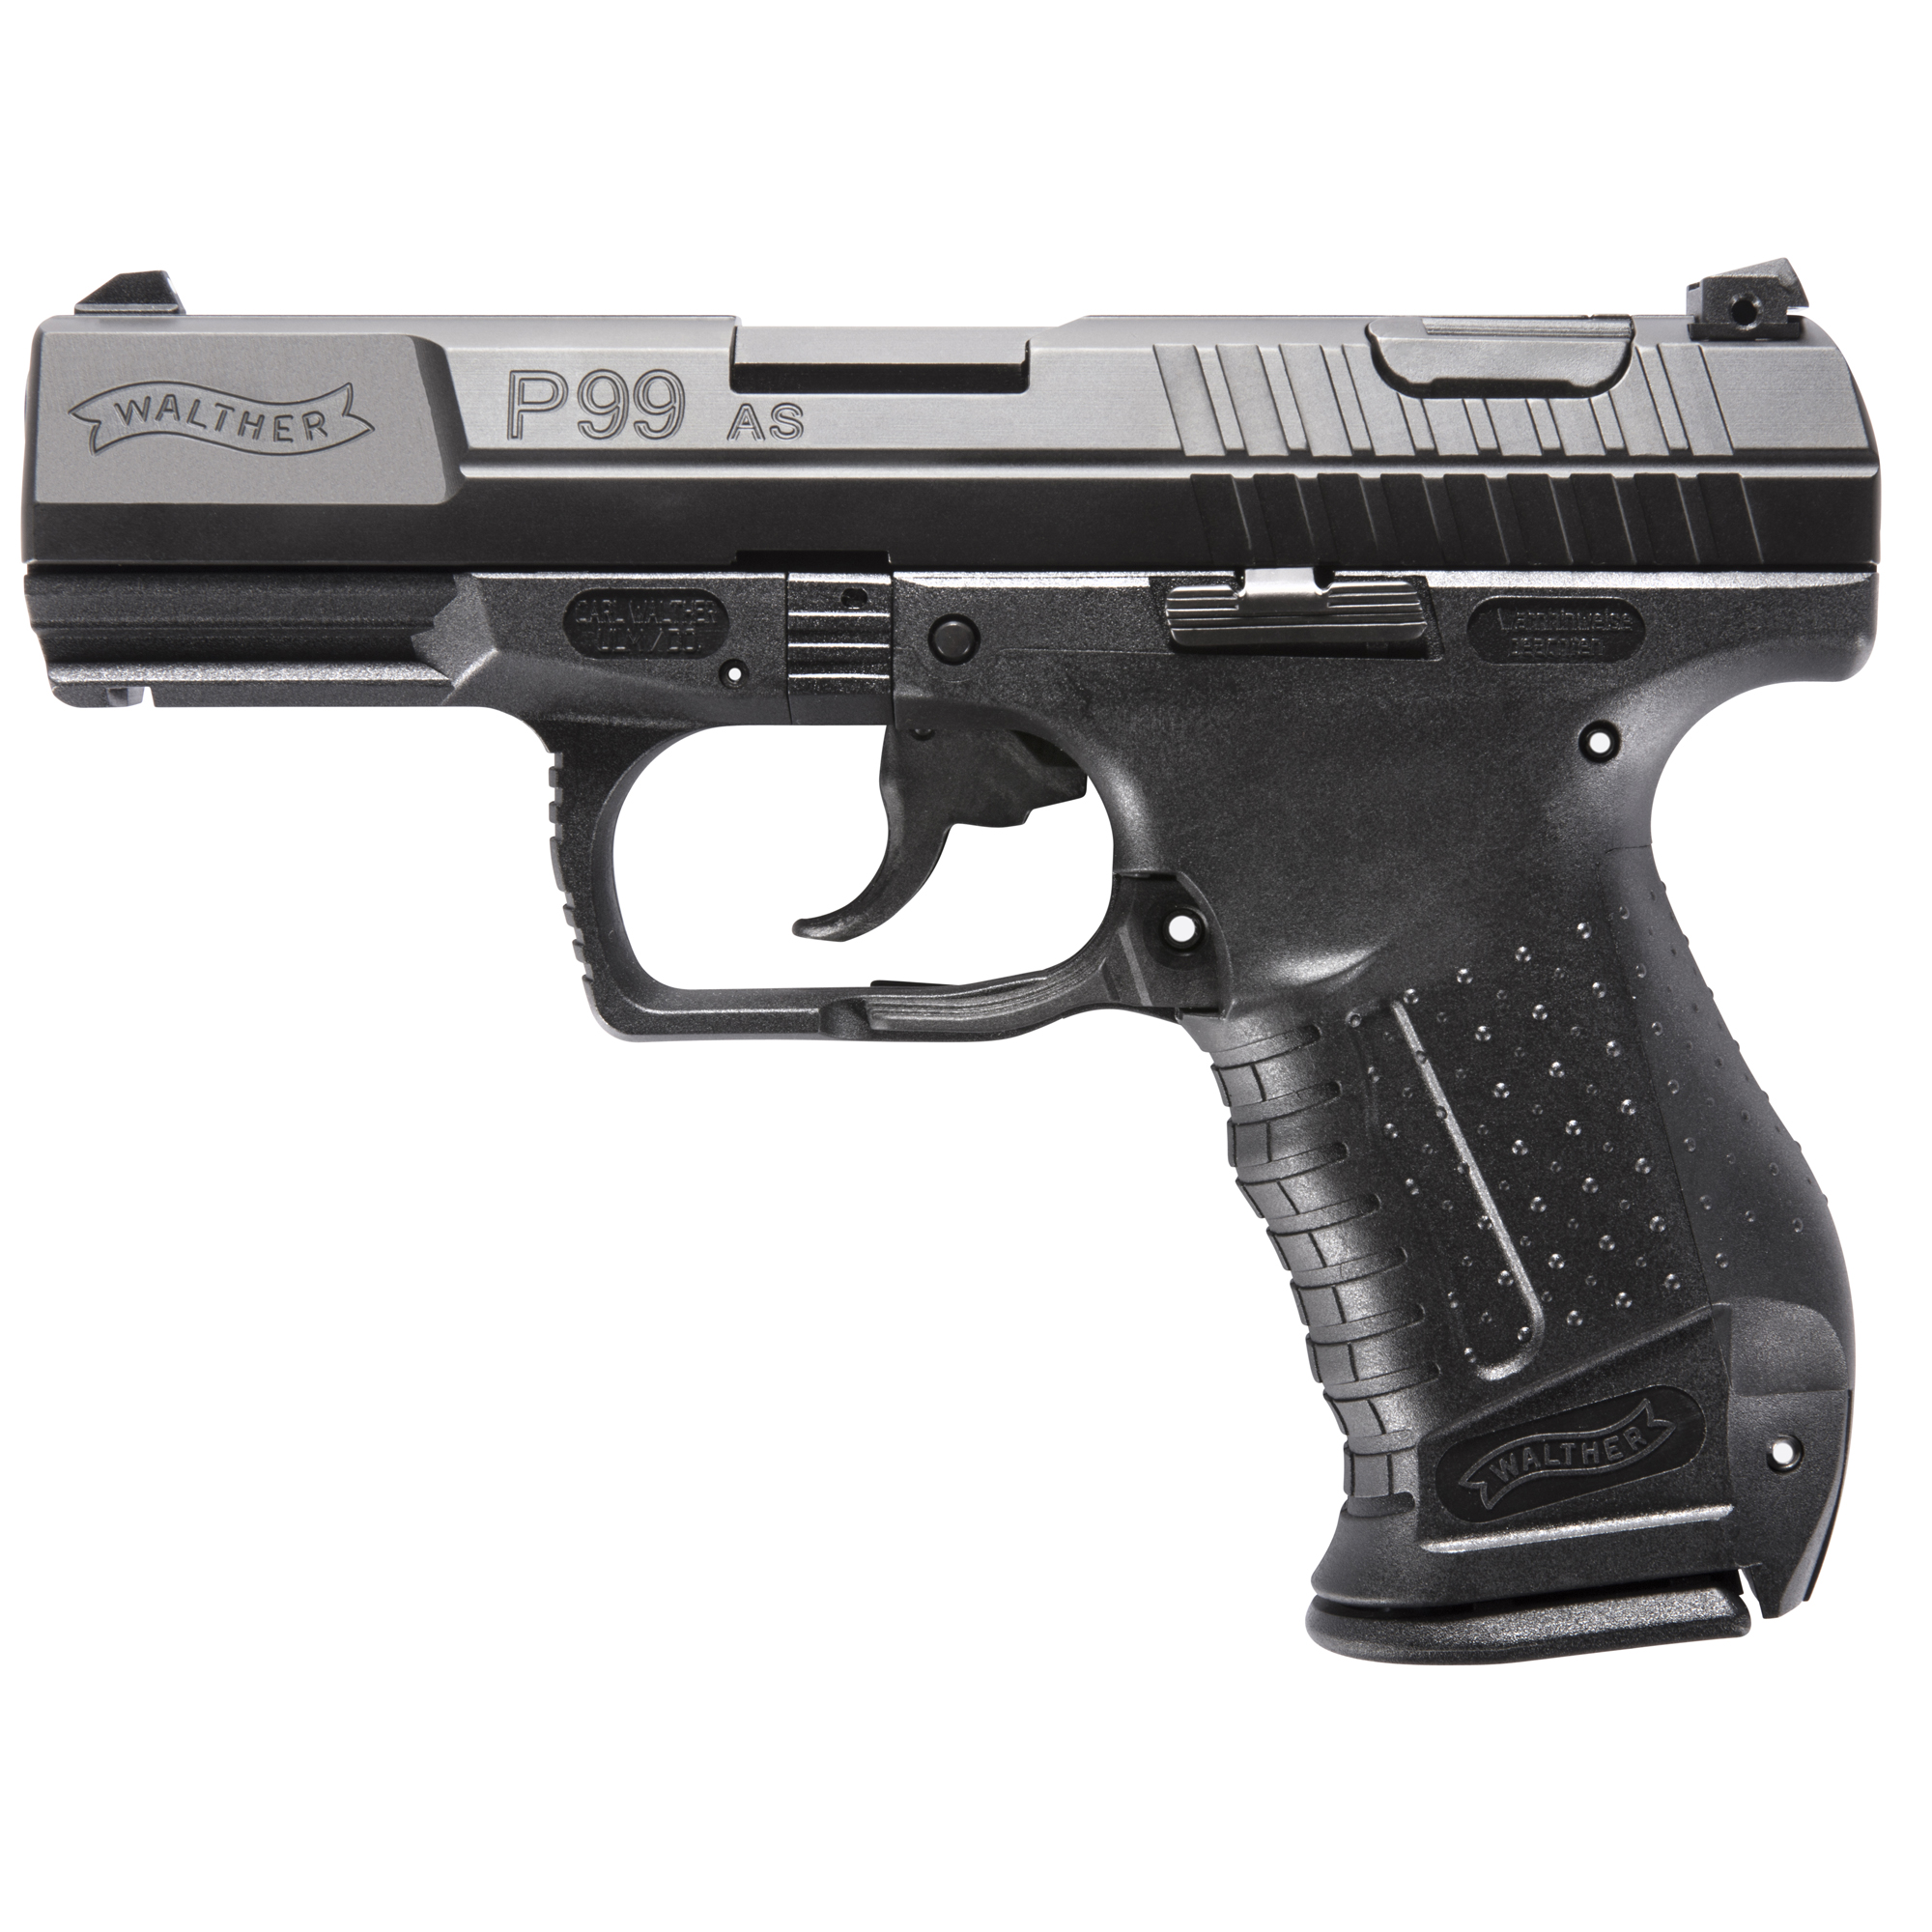 """As the duty pistol for law enforcement agencies in North America"""" Europe and Asia"""" the P99 has endured the harshest operating conditions a handgun will ever see. What's more"""" its ergonomics and engineering have evolved subtly in response to feedback from agencies over the years. The P99 is truly a world class handgun for professionals who must trust their lives to a firearm."""